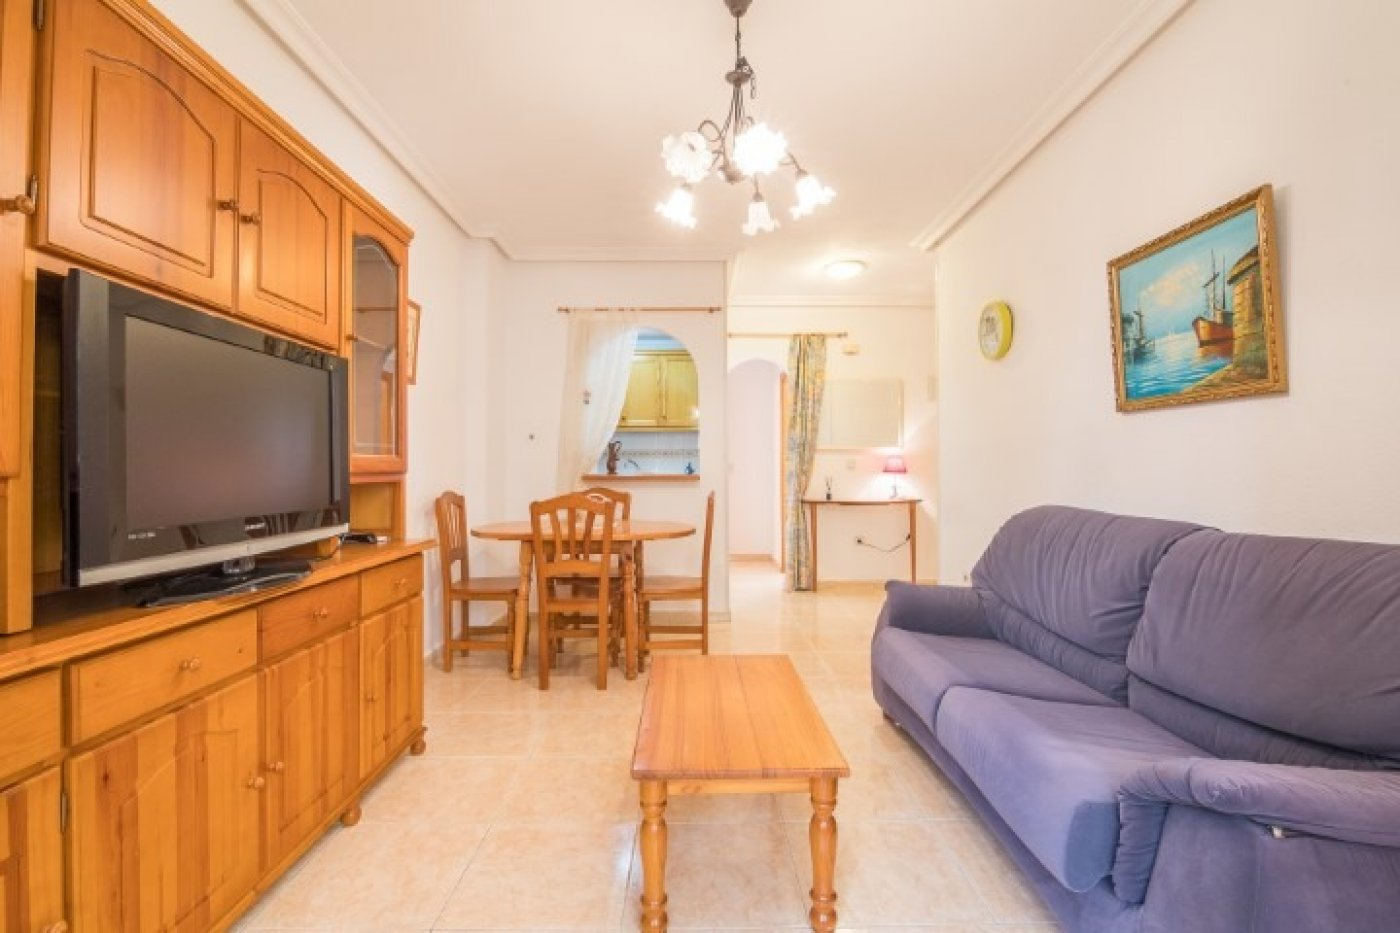 1 Bedroom Apartment For Sale In Torrevieja Near Los Locos Beach